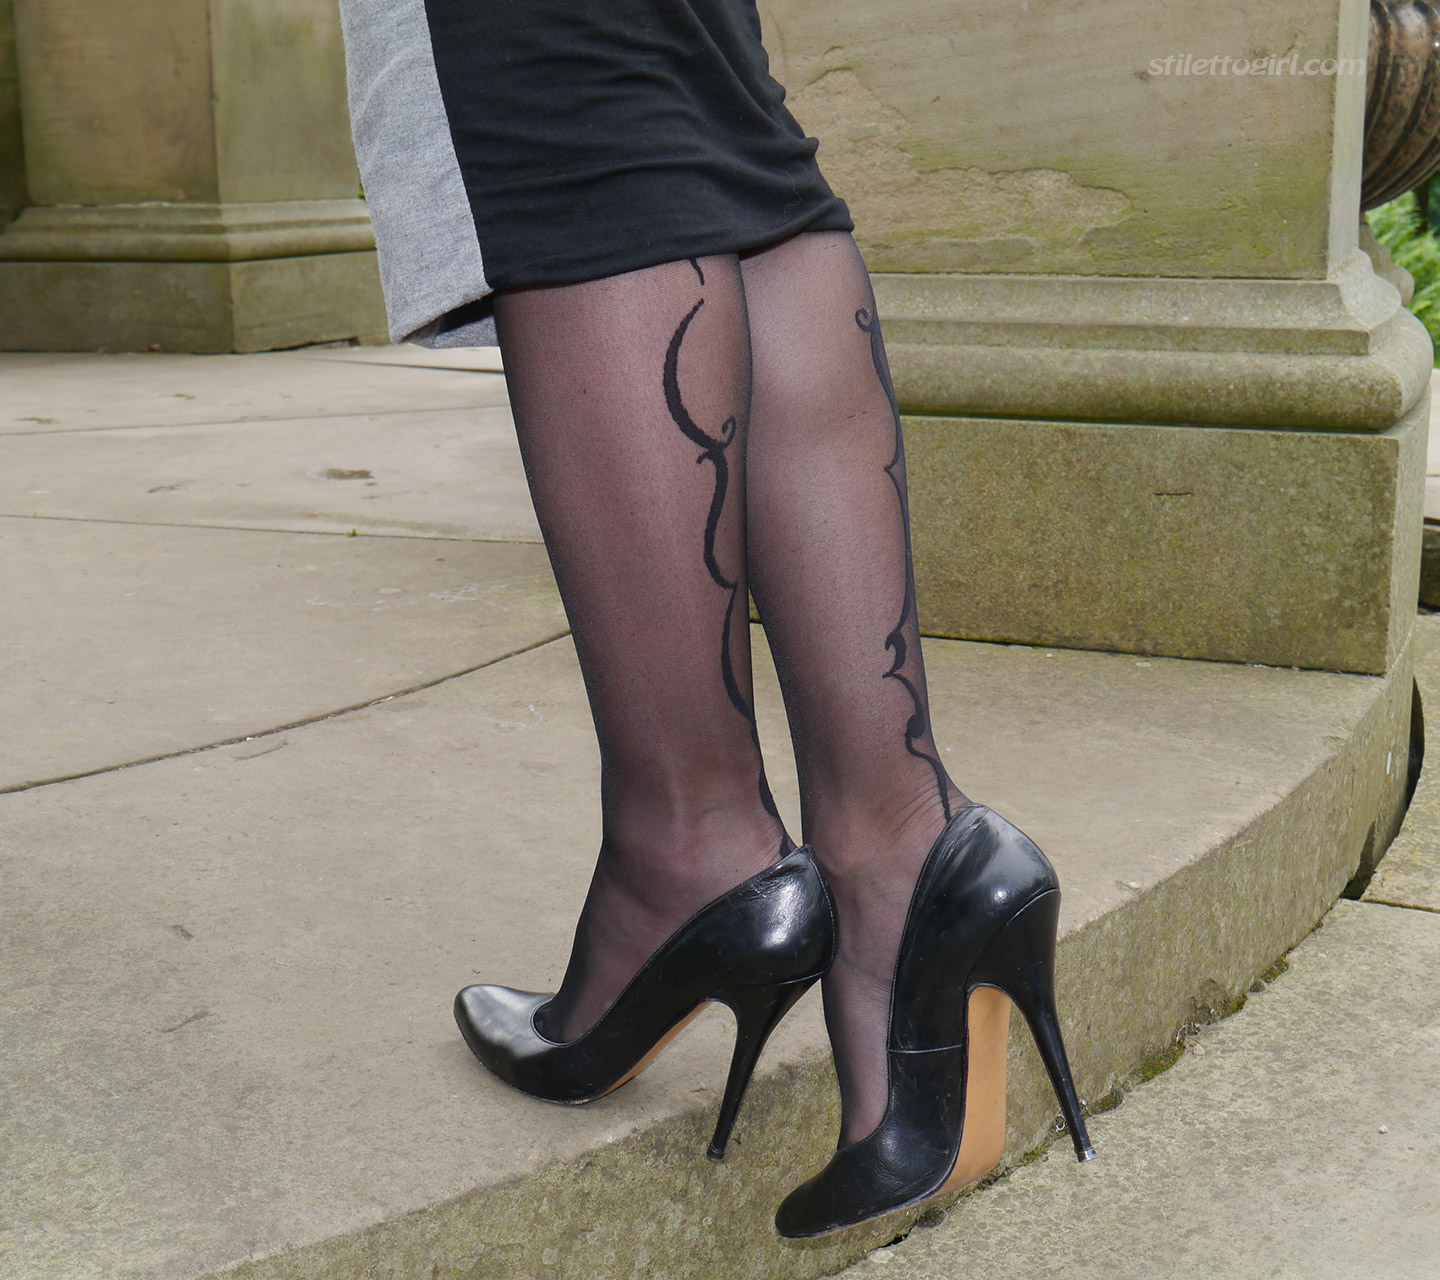 High Heels and Black Pantyhose by Stiletto Girl